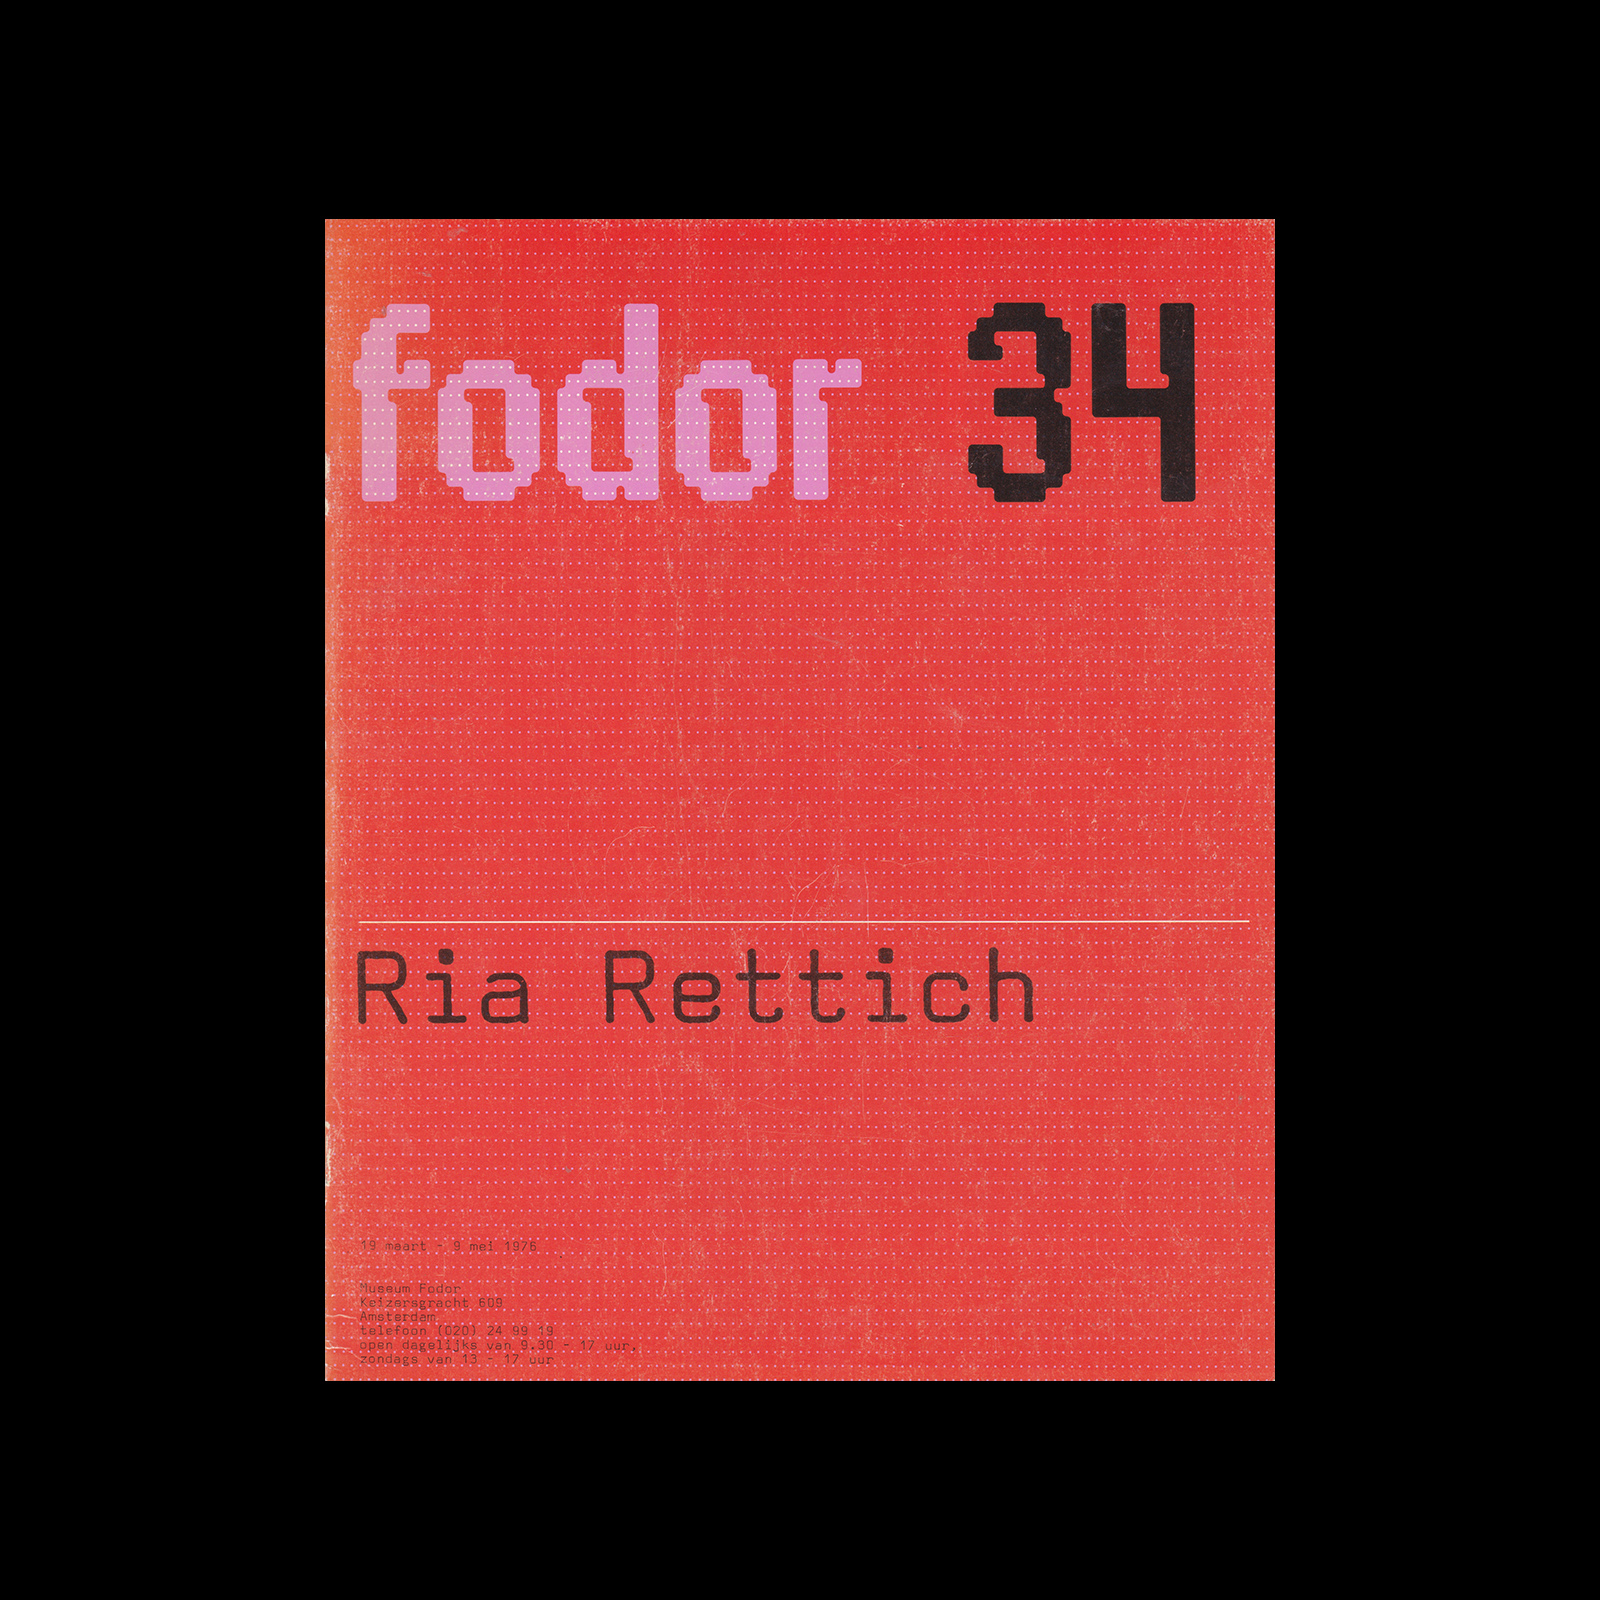 Fodor 34, 1976 - Ria Rettich. Designed by Wim Crouwel and Daphne Duijvelshoff (Total Design)